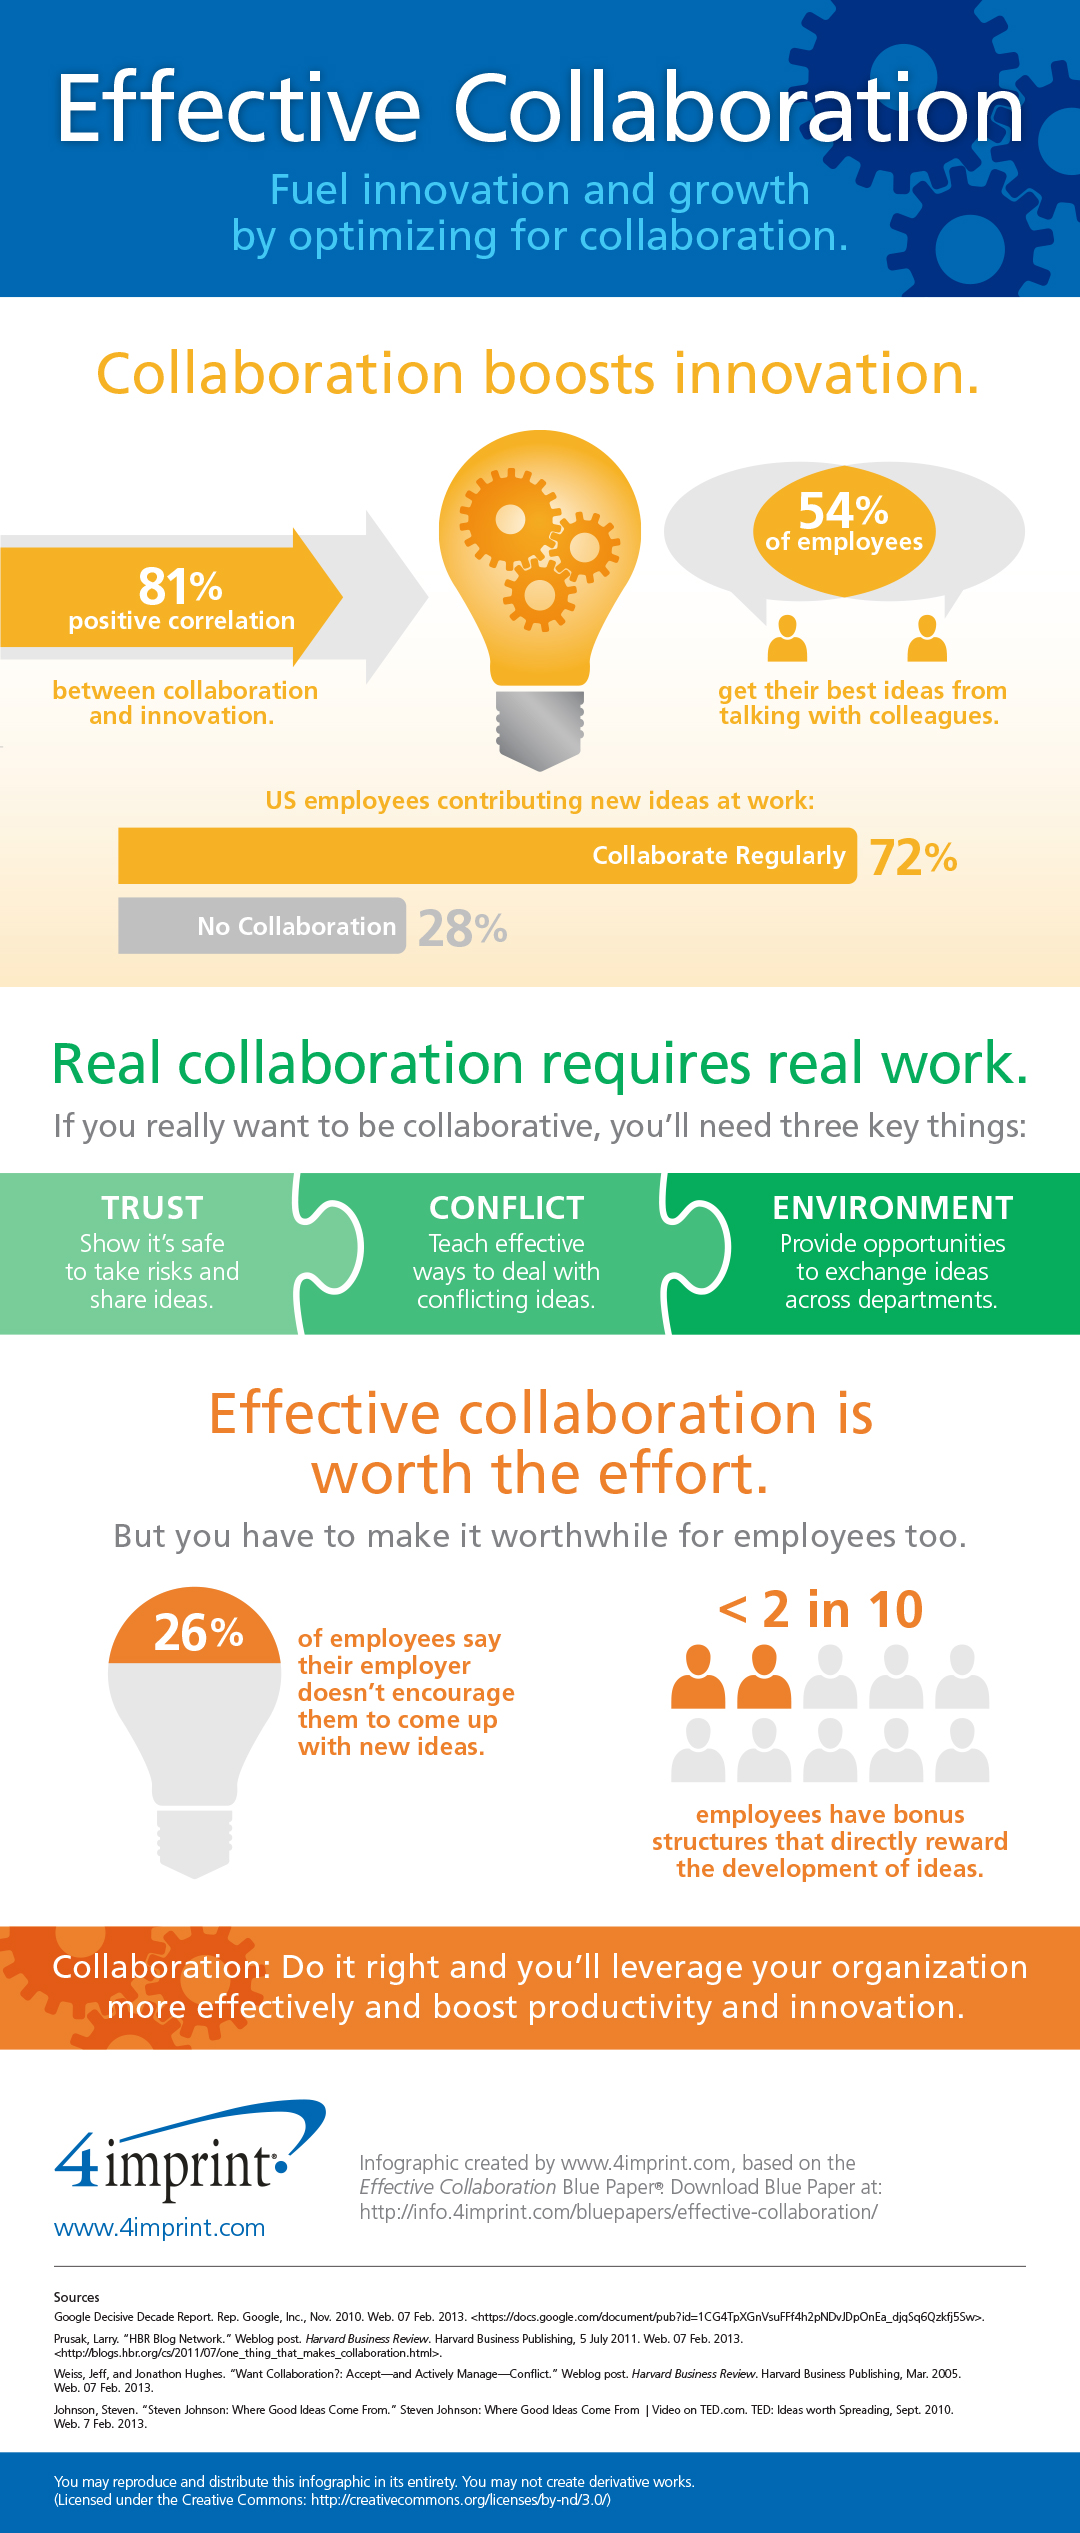 Effective Collaboration and innovation